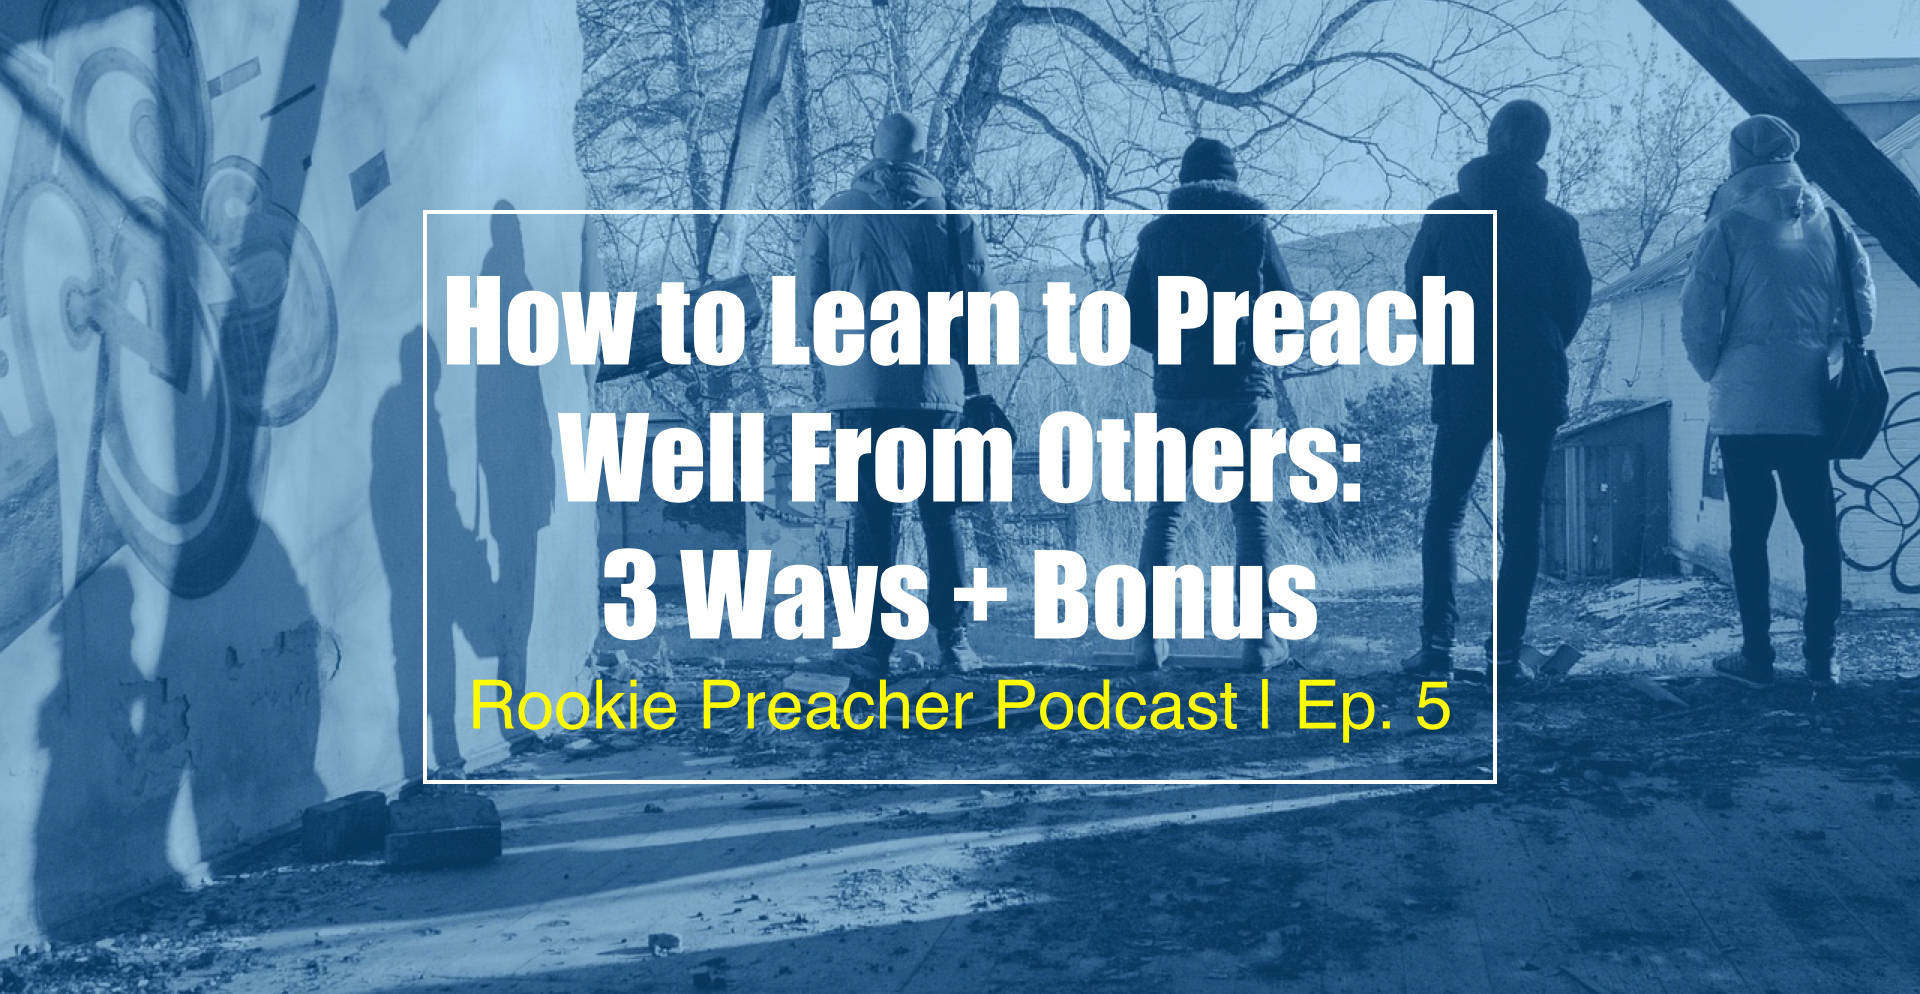 RPP 005: How to Learn to Preach Well From Others: 3 Ways + Bonus